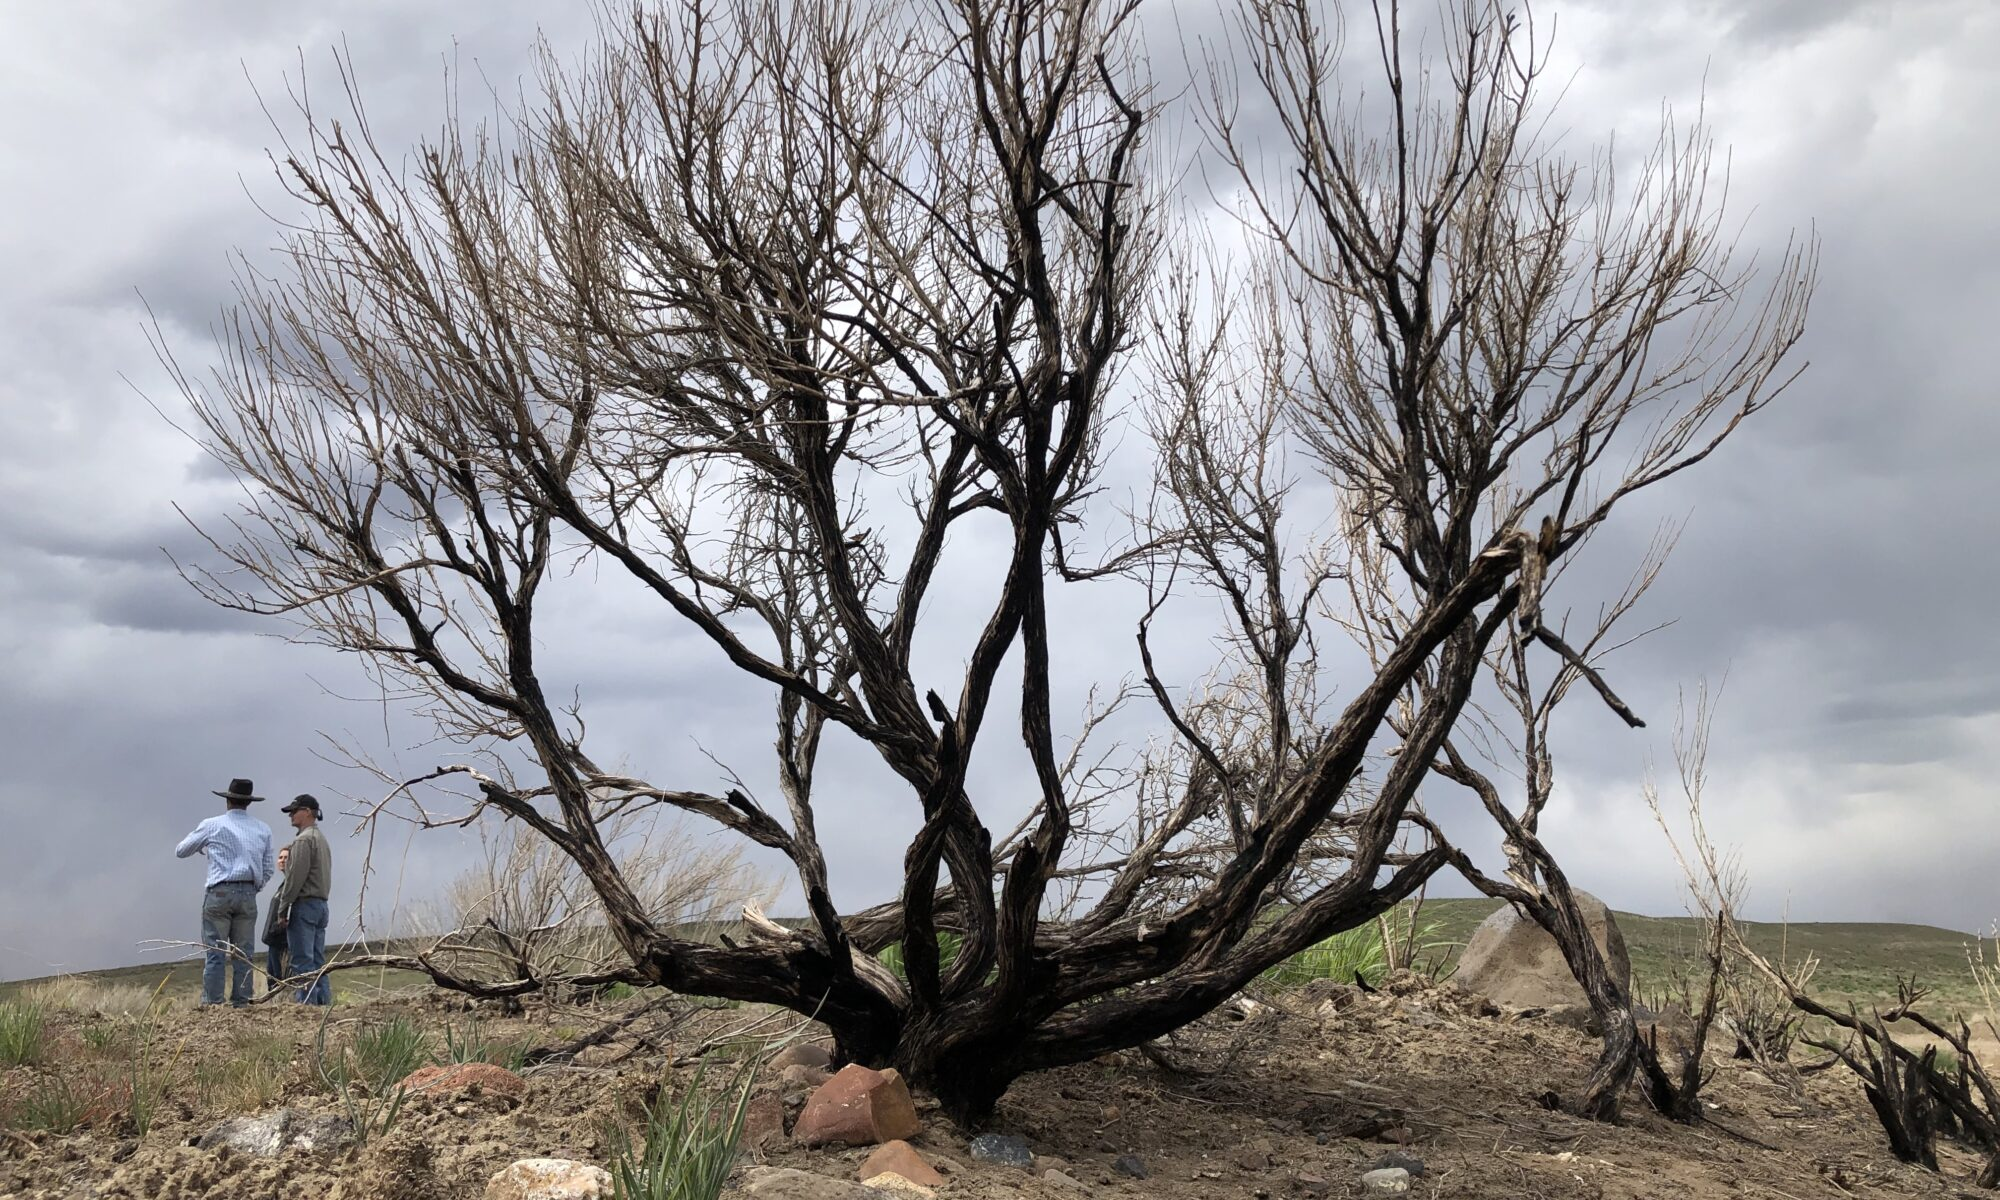 Indy Environment: Fire restoration in the Great Basin, fluid water bills and plutonium accountability